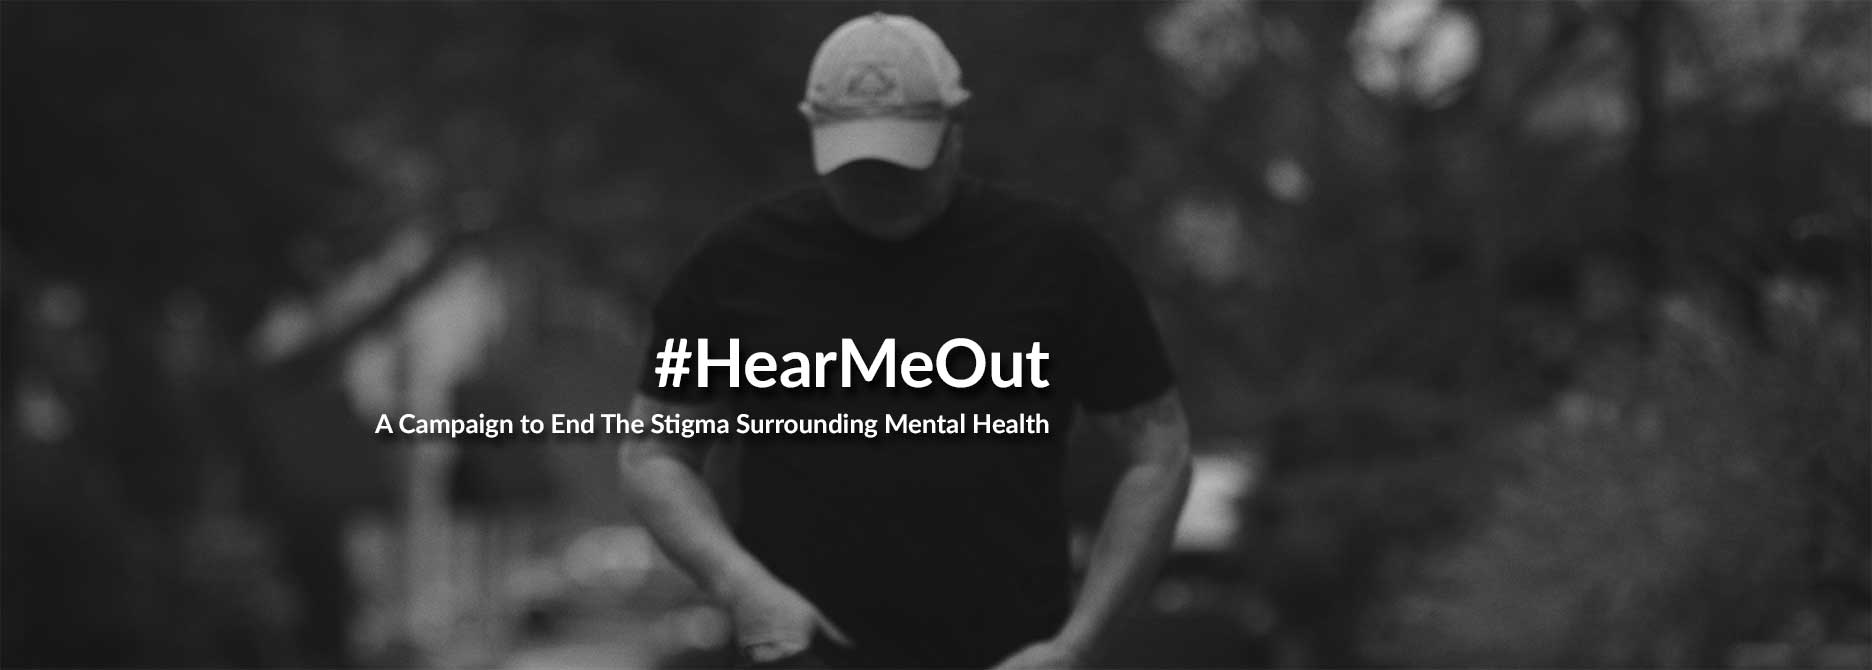 #HearMeOut - A Campaign to End The Stigma Surrounding Mental Health